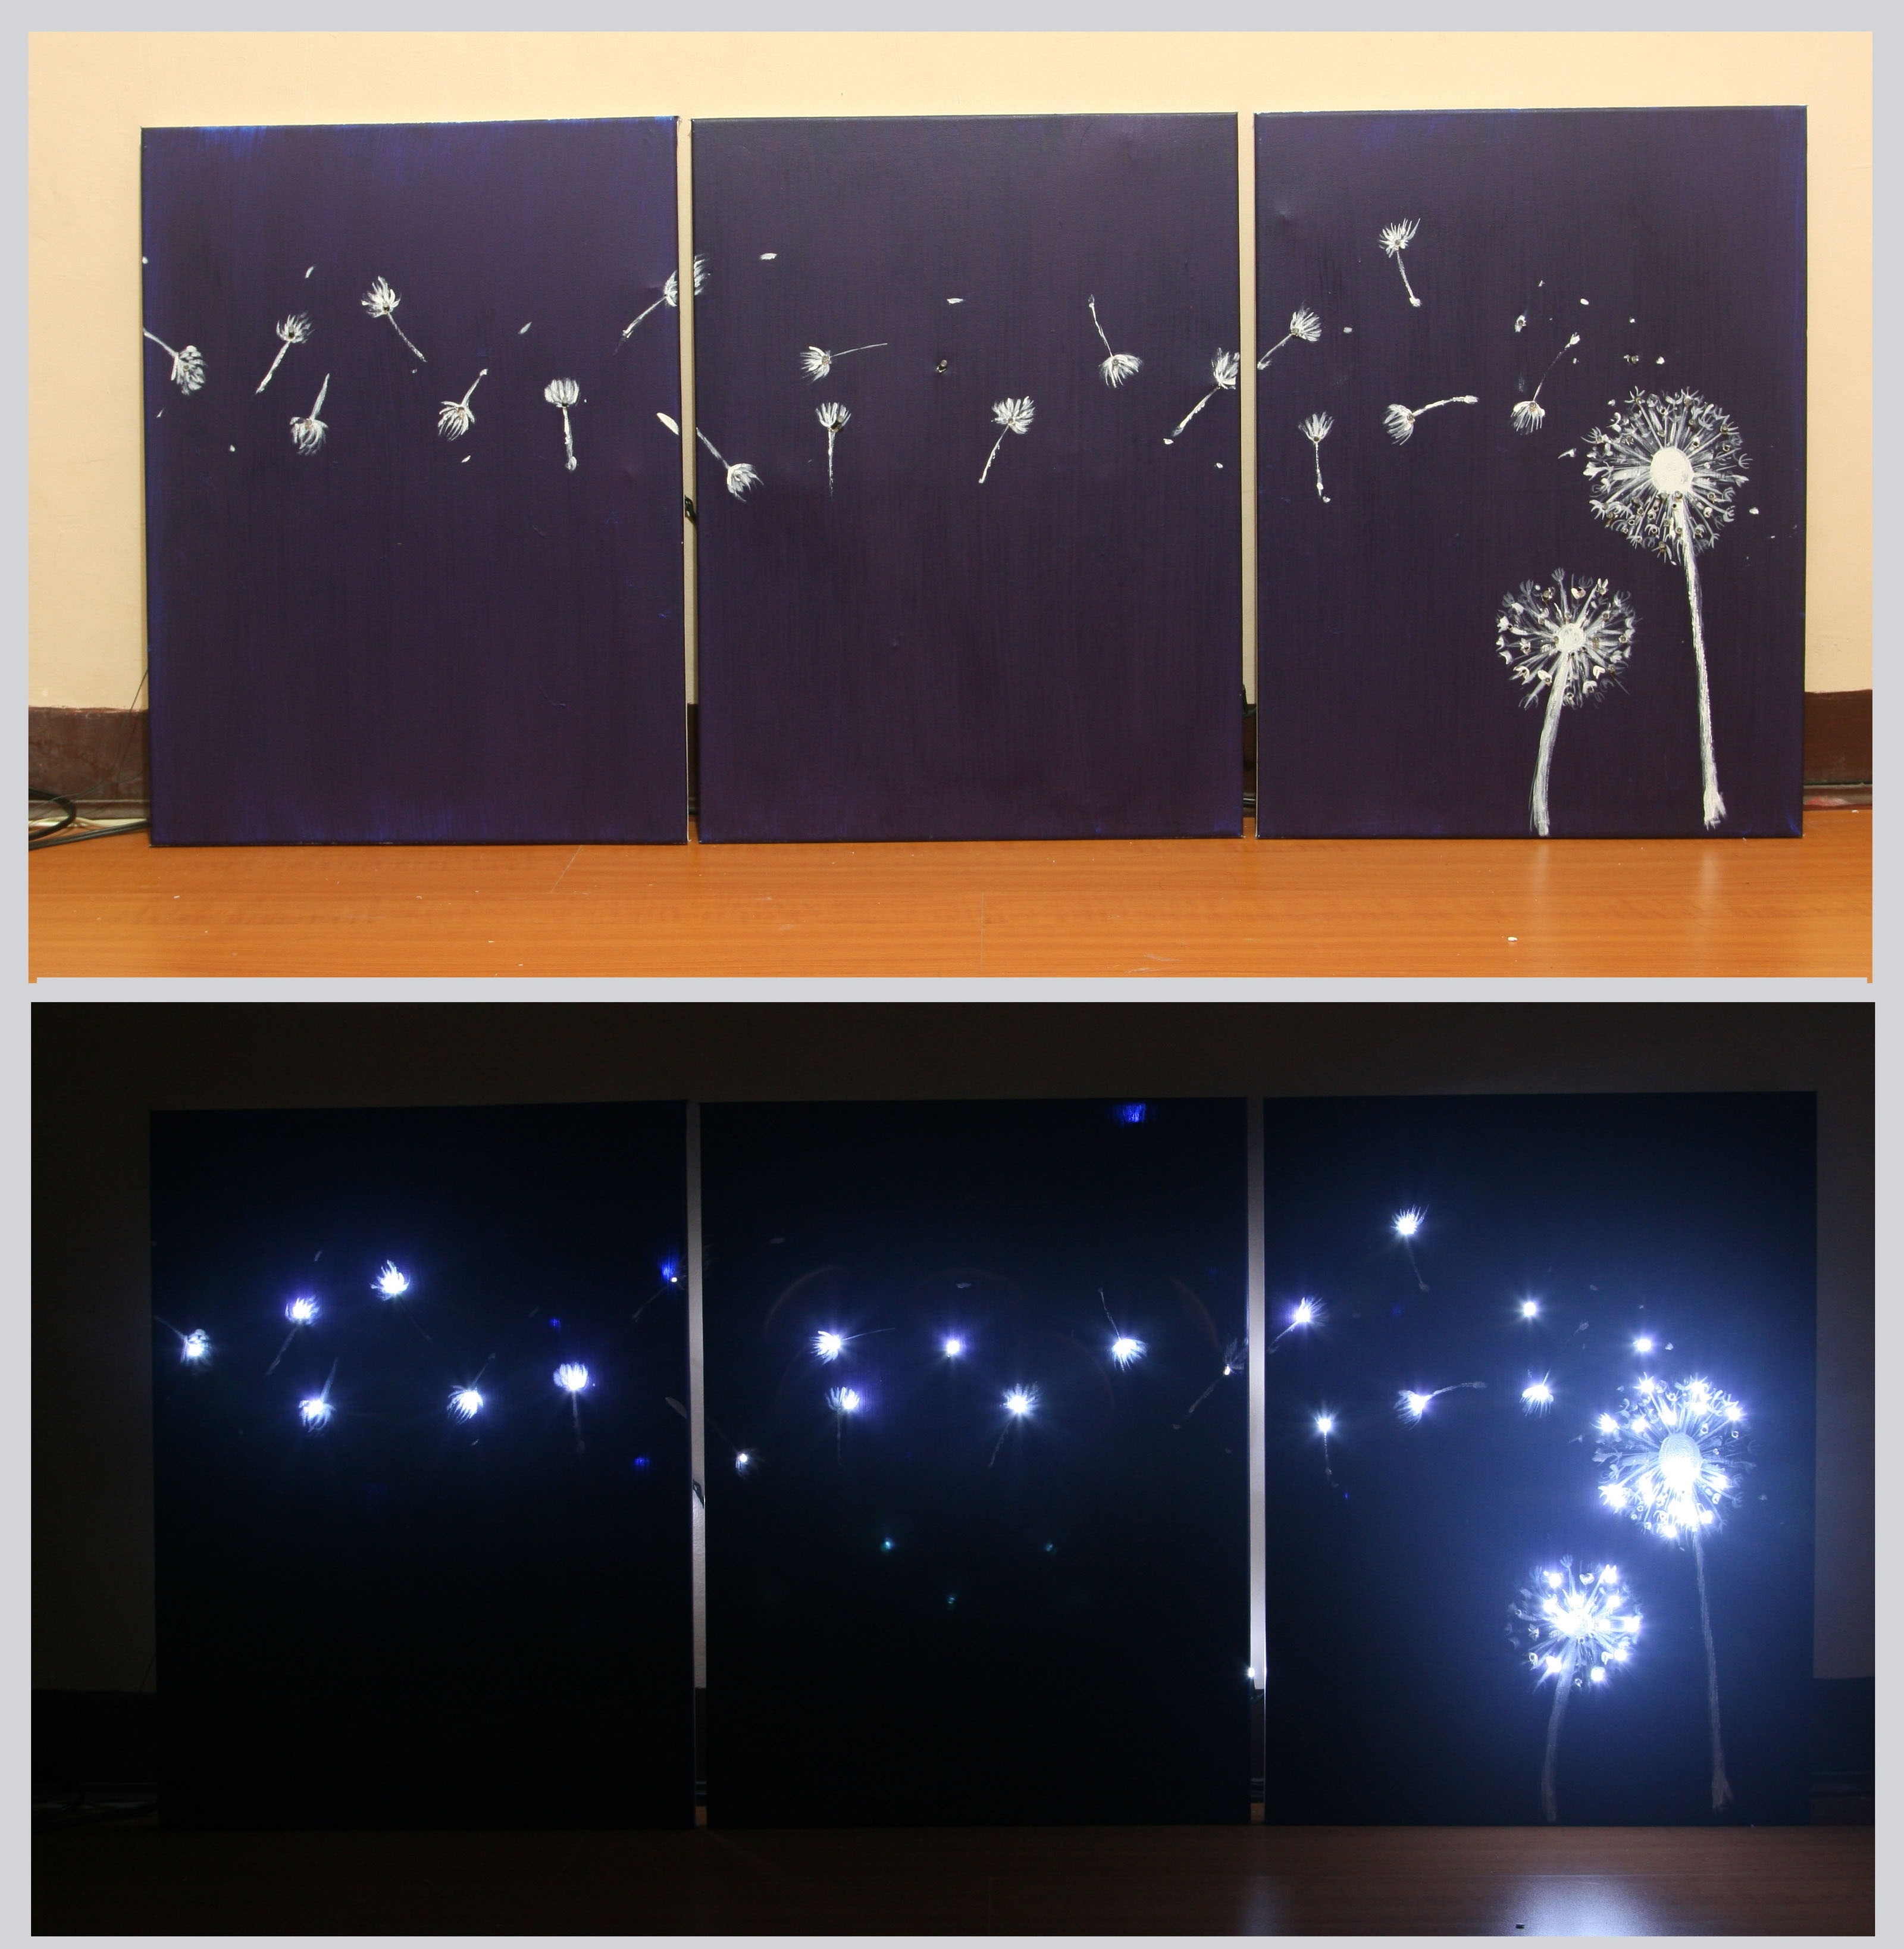 Preferred Lighted Wall Art Throughout 3 Ways To Design Three Panel, Light Up Dandelion Wall Art (View 10 of 15)